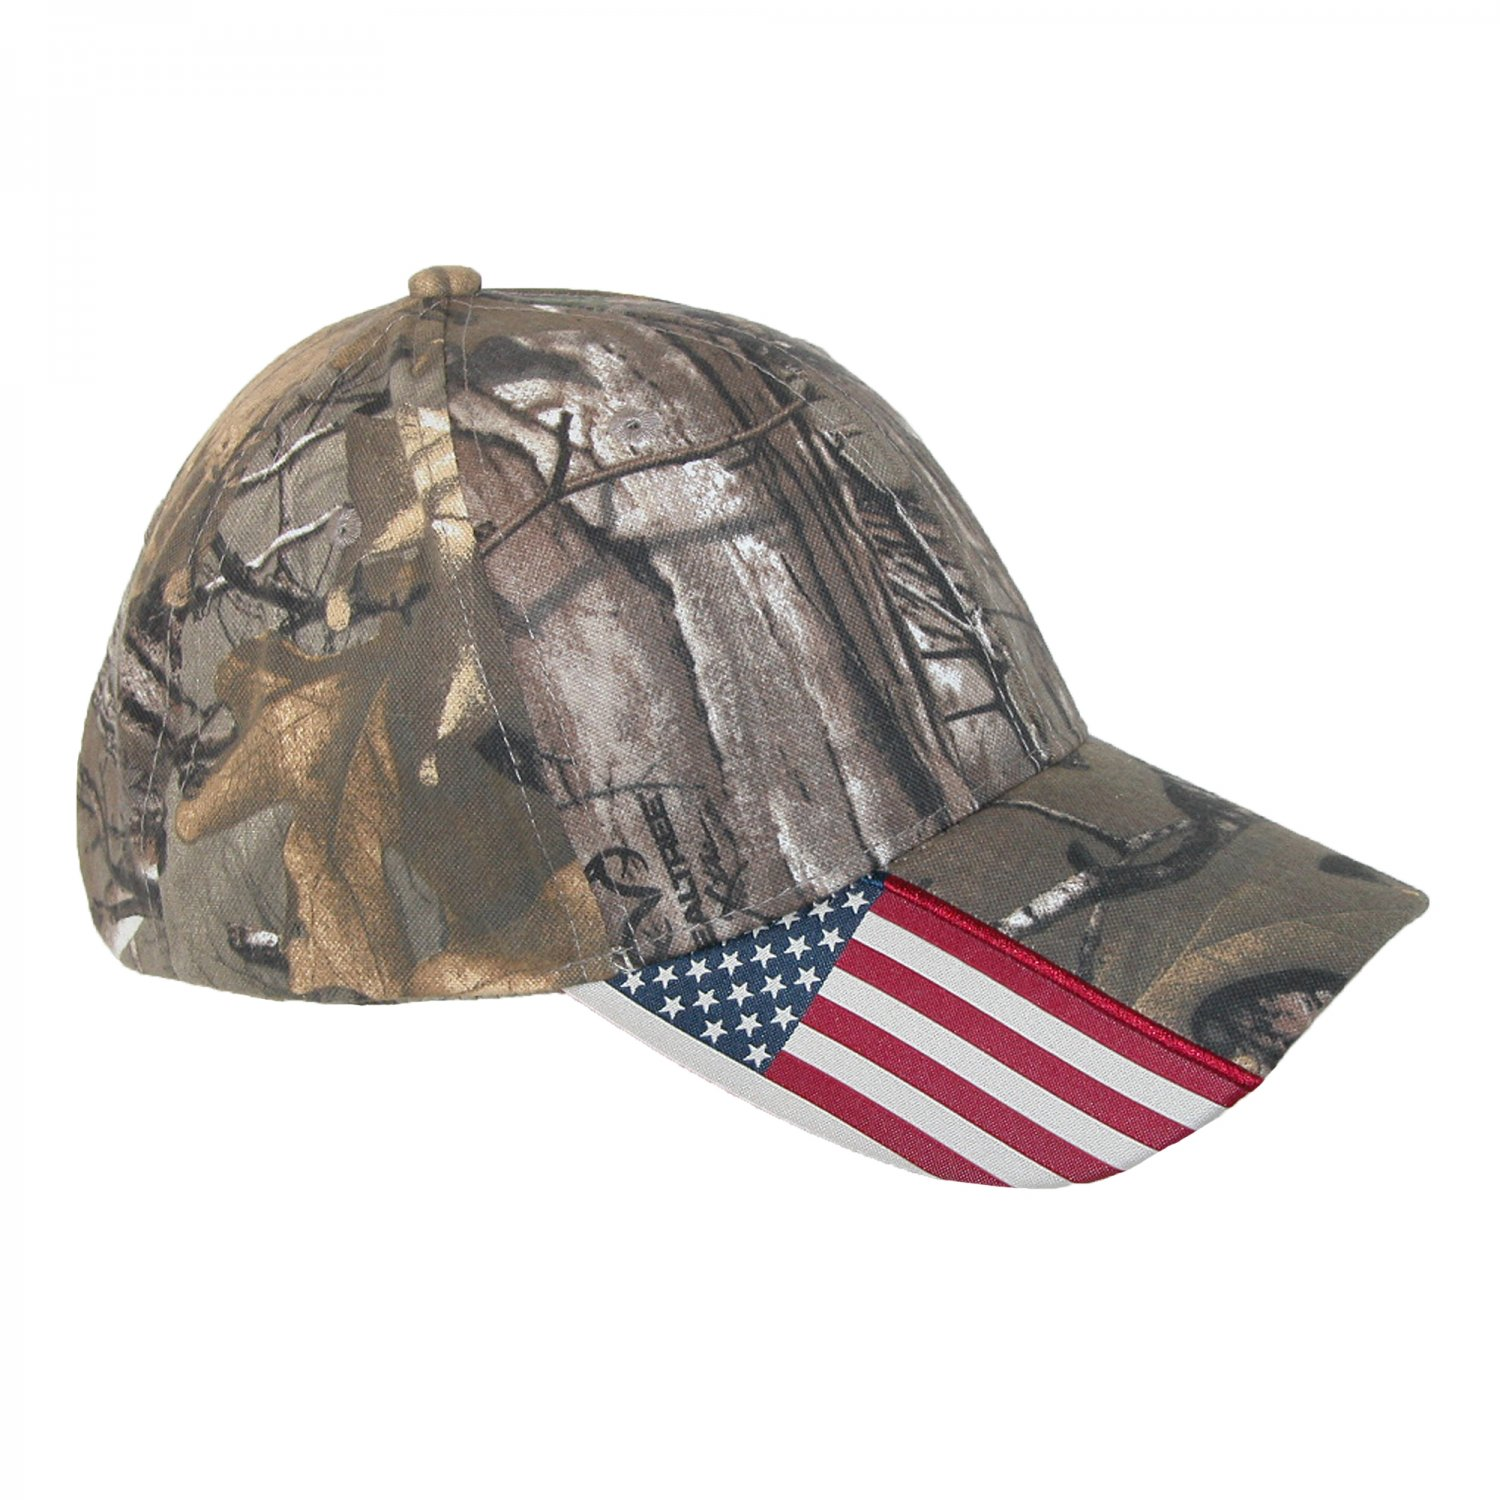 Real Tree Camo USA American Flag Caps United States America Army Polo Baseball Hat Cap